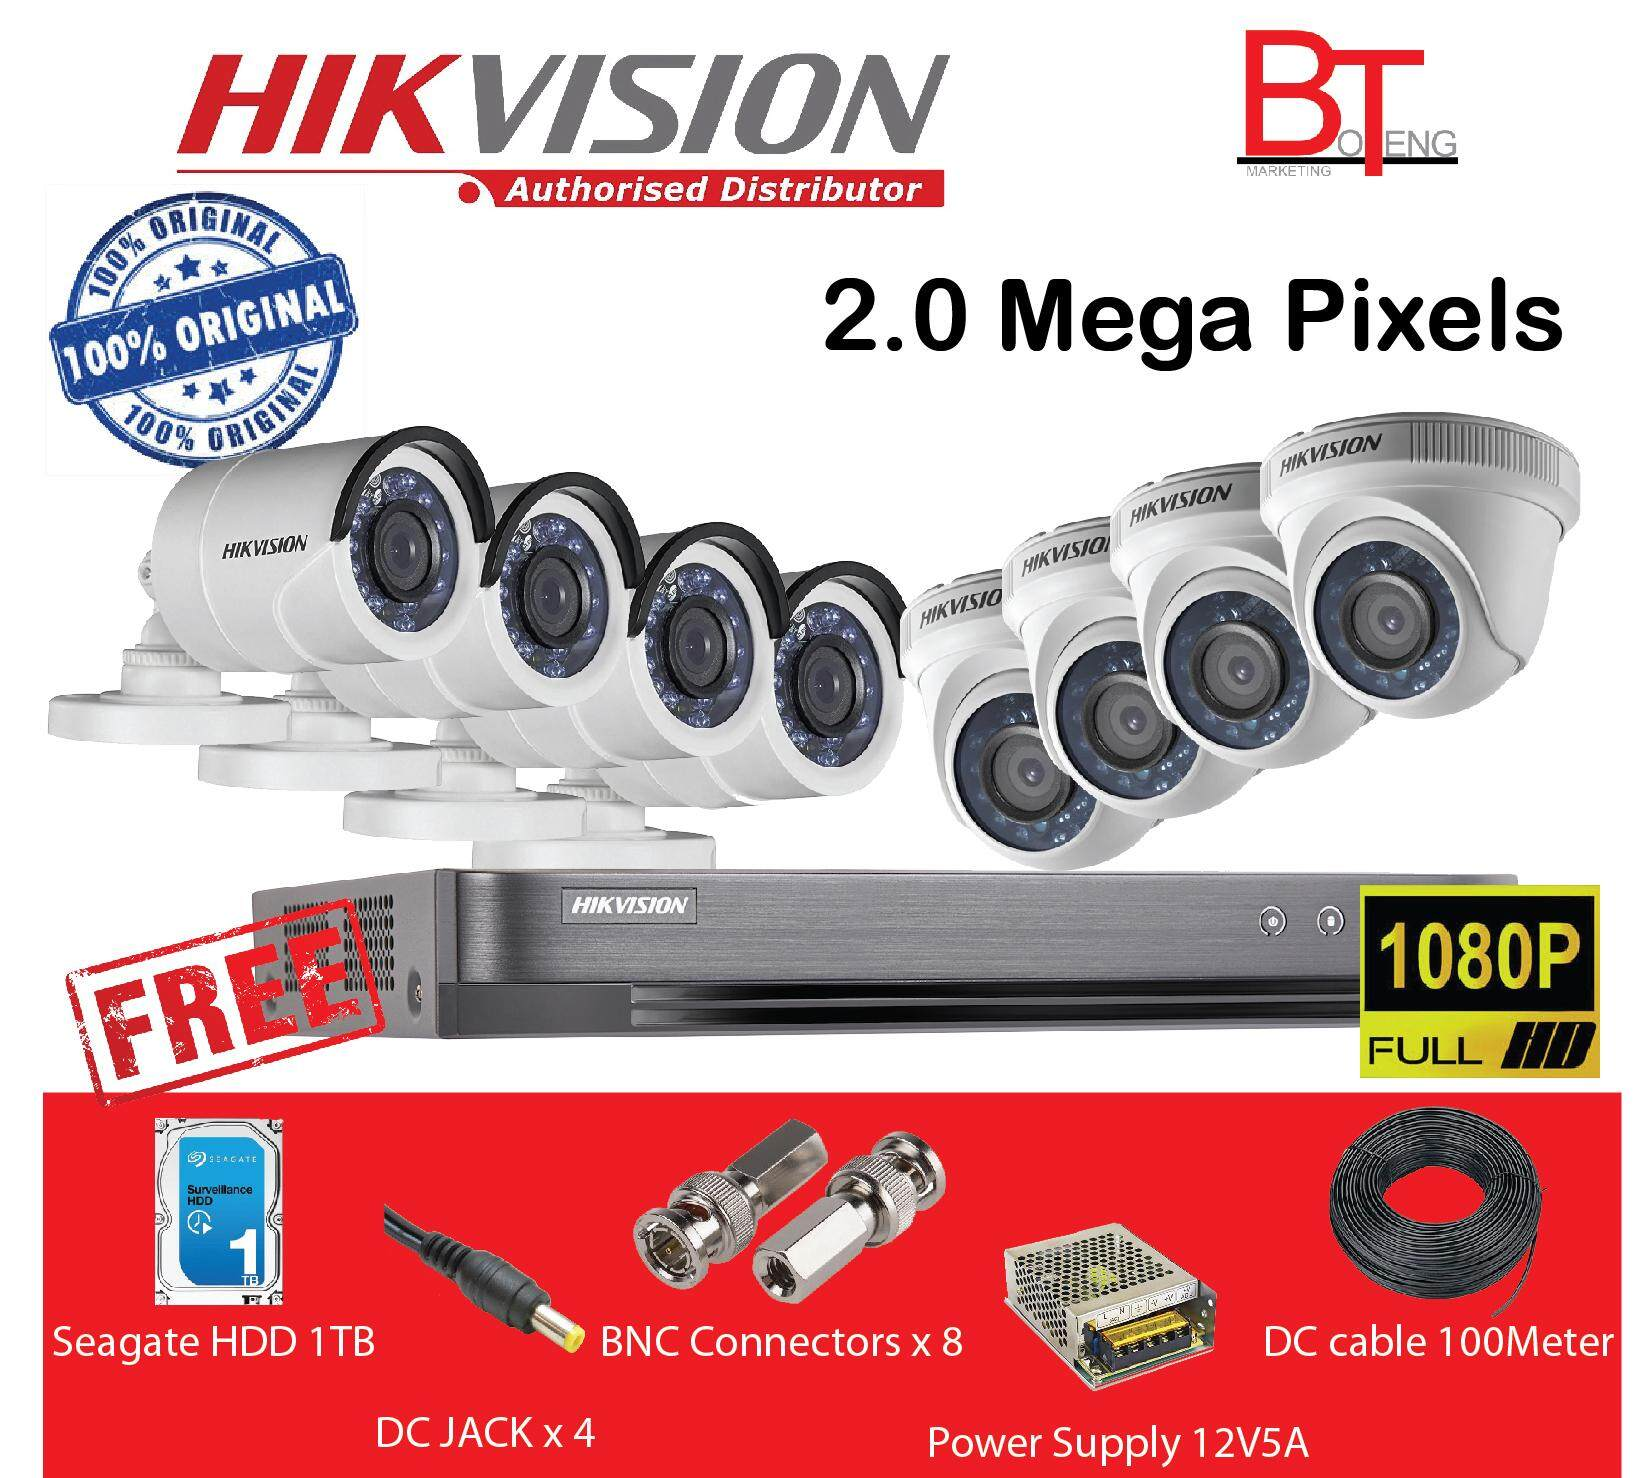 Cctv Security Cameras Buy At Best Price In Wiring Car Audio Promotionshop For Promotional Hikvision Tvi Hd 1080p 8ch Packages